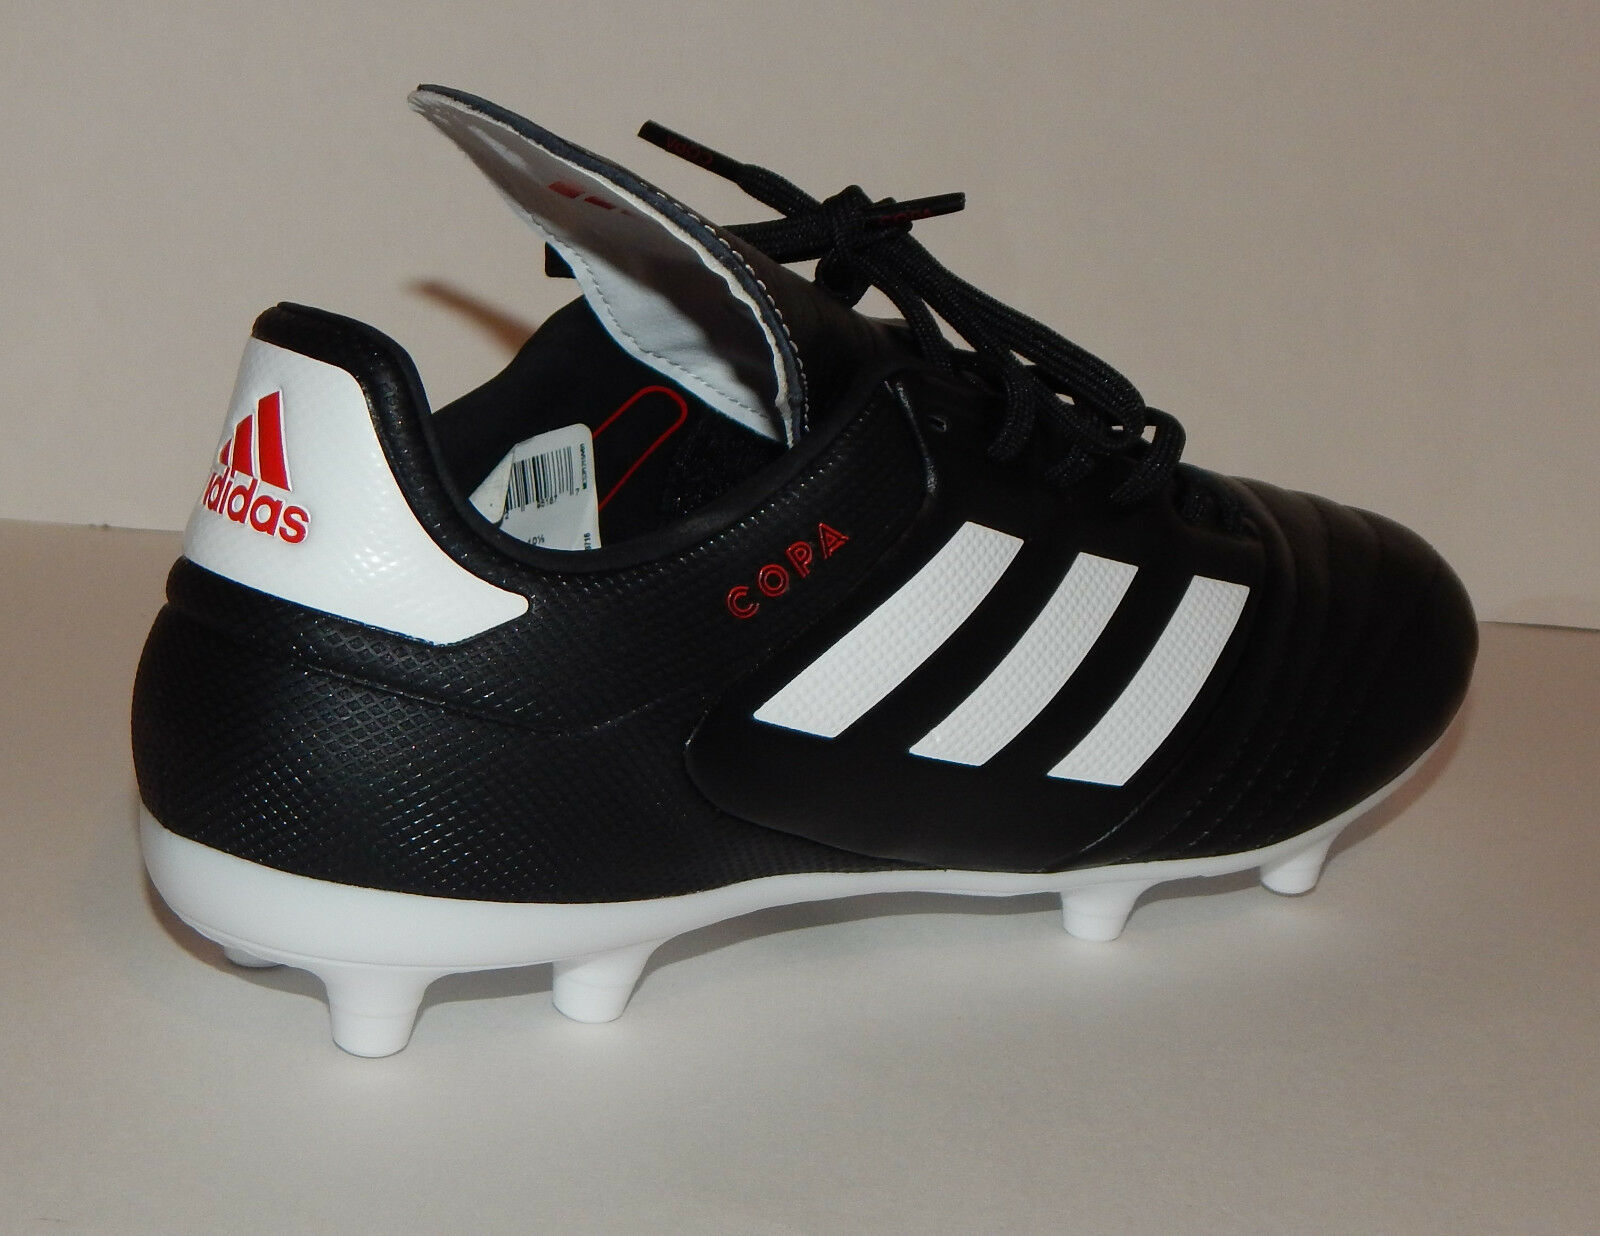 Adidas Men's COPA 17.3 FG Soccer Shoe Cleat NEW Black/White BA9716 Several Comfortable Brand discount